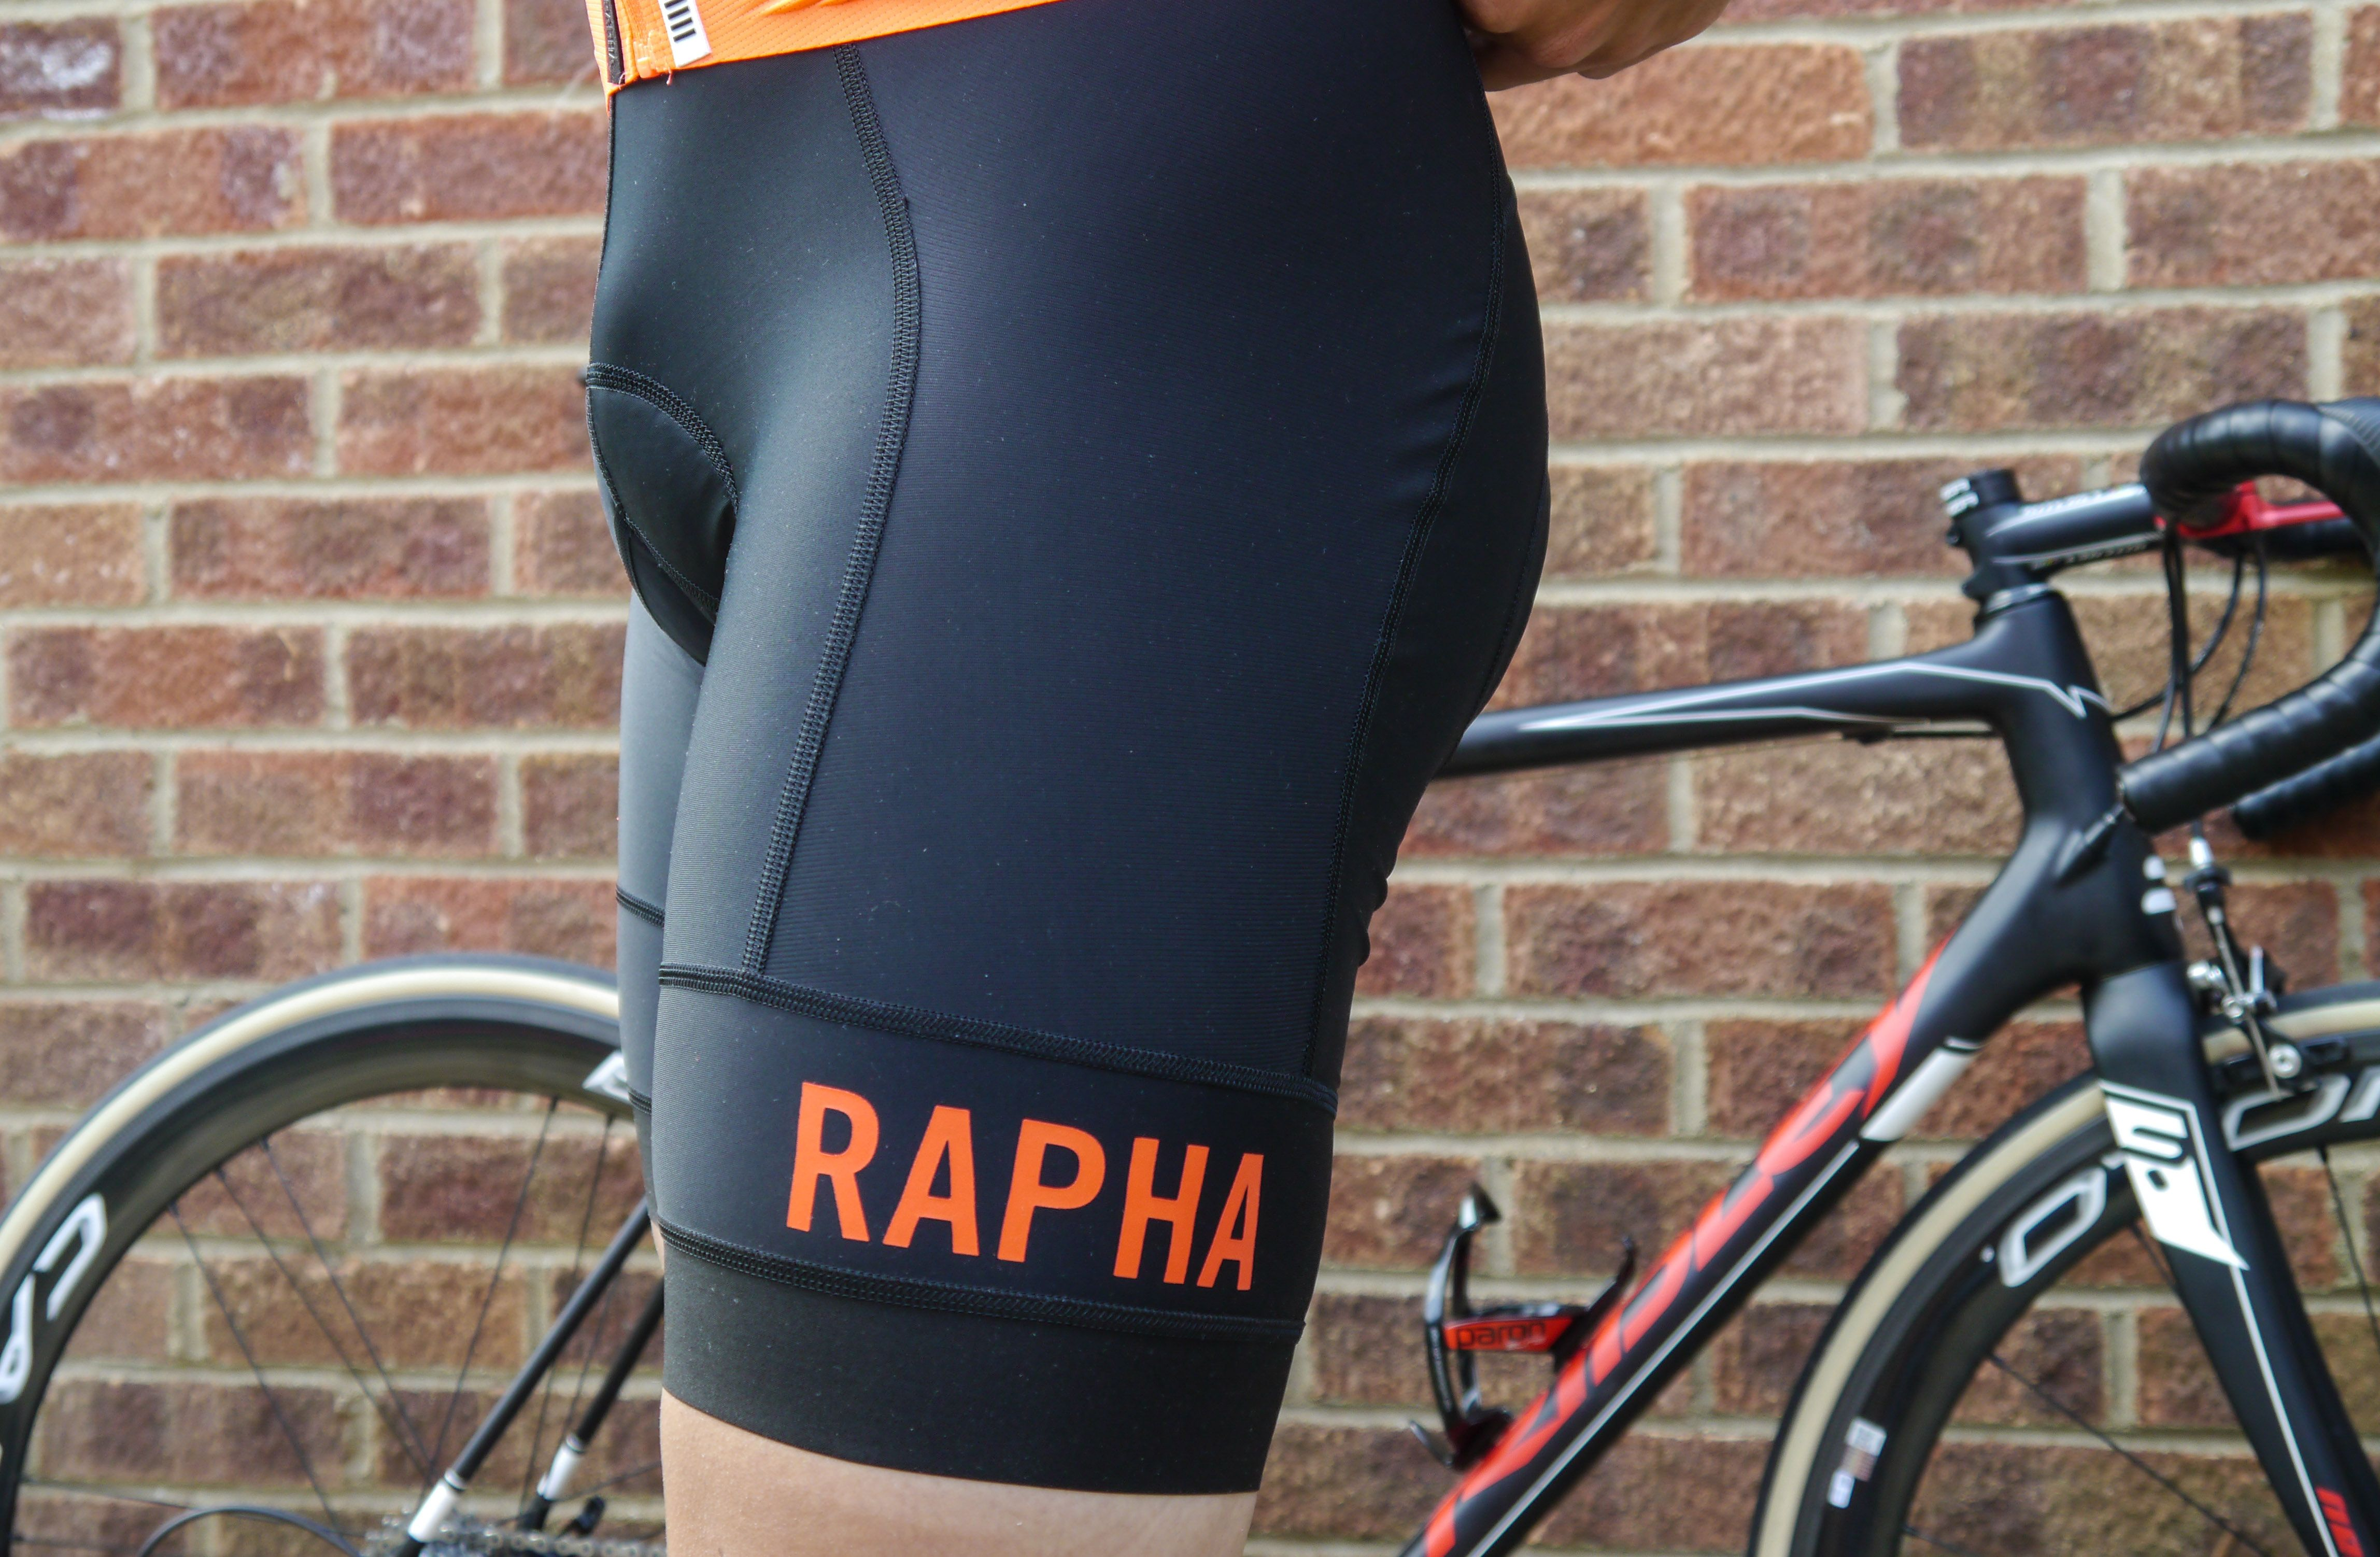 Rapha Pro Team Lightweight Bib Shorts Review Deporte Ciclismo